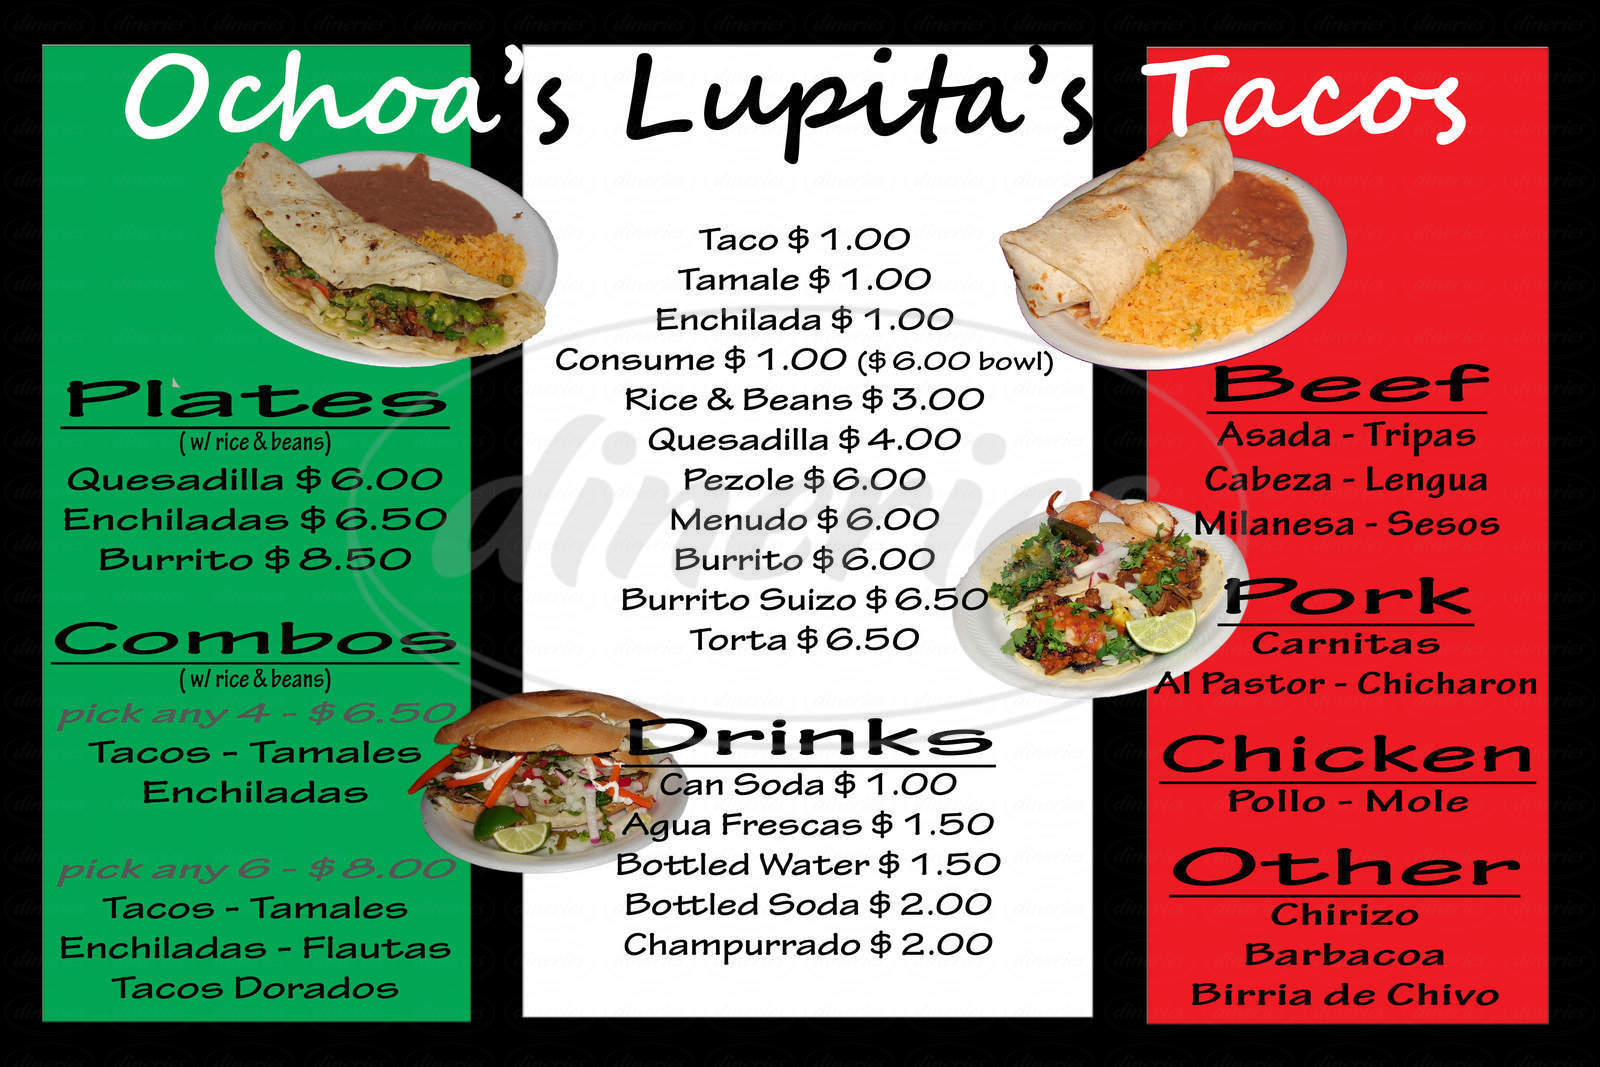 menu for Ochoas Lupitas